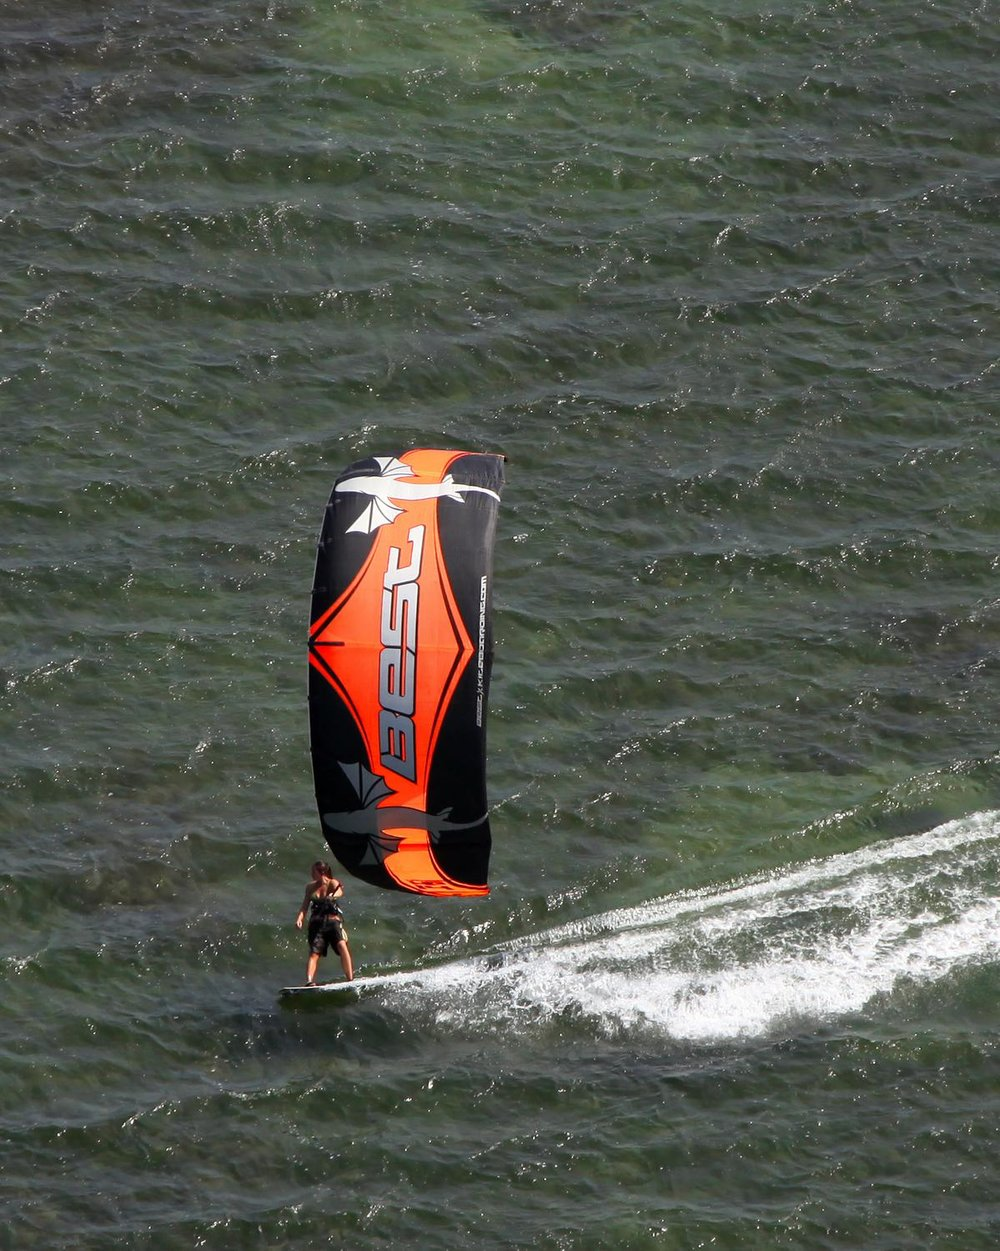 Kite Boarding- South Padre Island Aerial Photographer - Aerial Drone Image - Aerial Drone Video - South Padre Island, TX - Rio Grande Valley, Texas